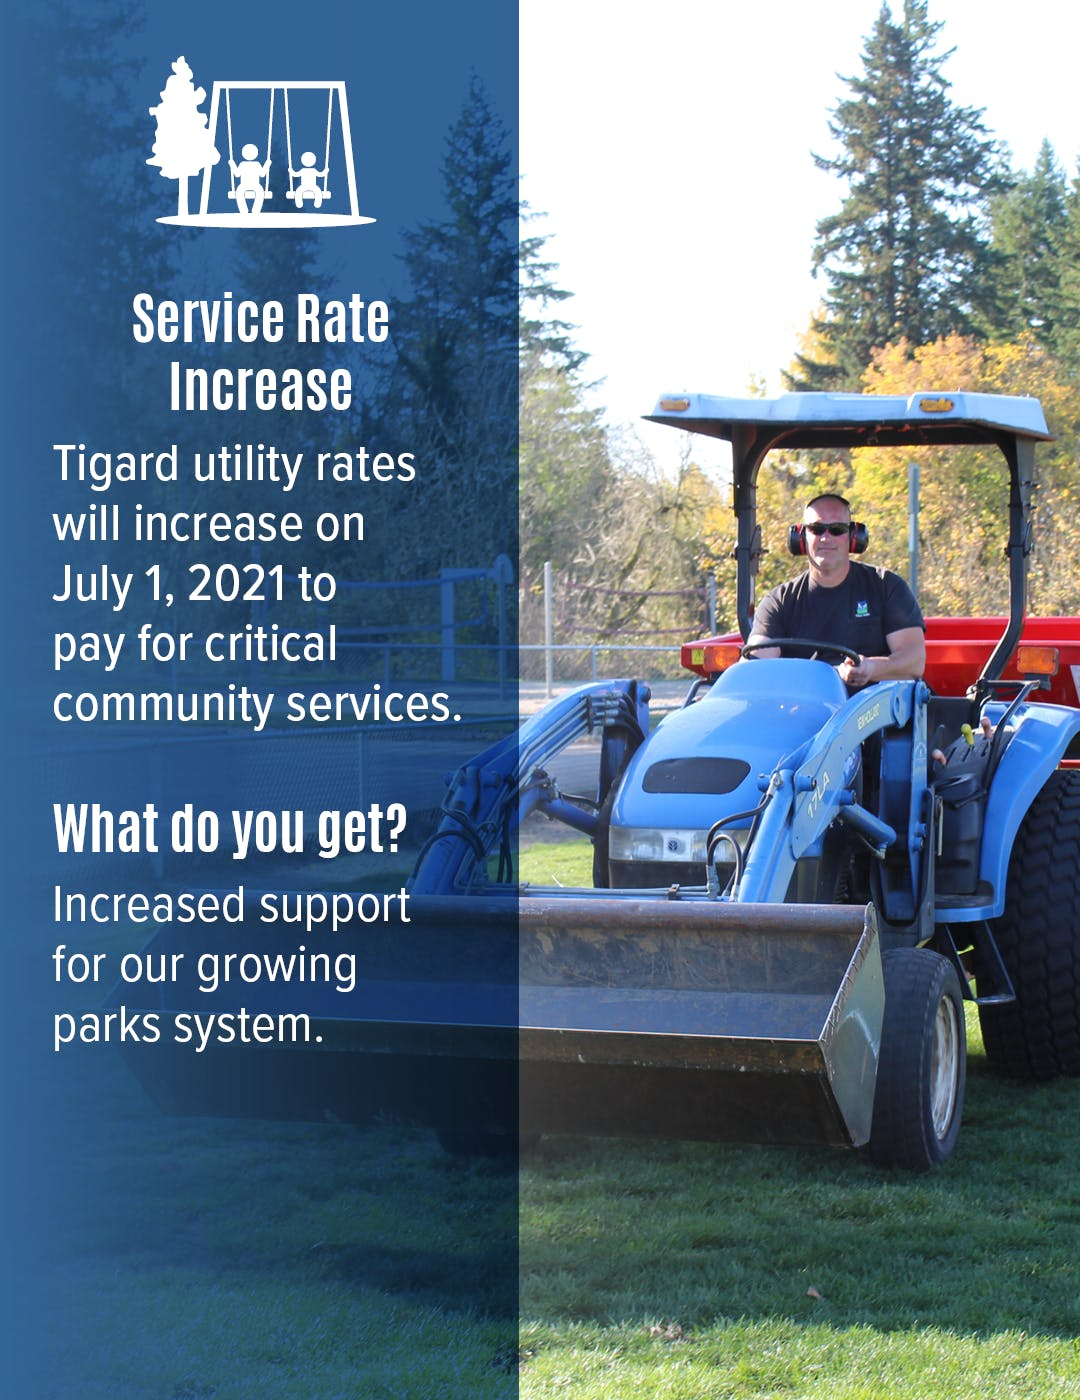 Services_Rate_Increase_Parks_July2021_shared_social_1080x1400.png